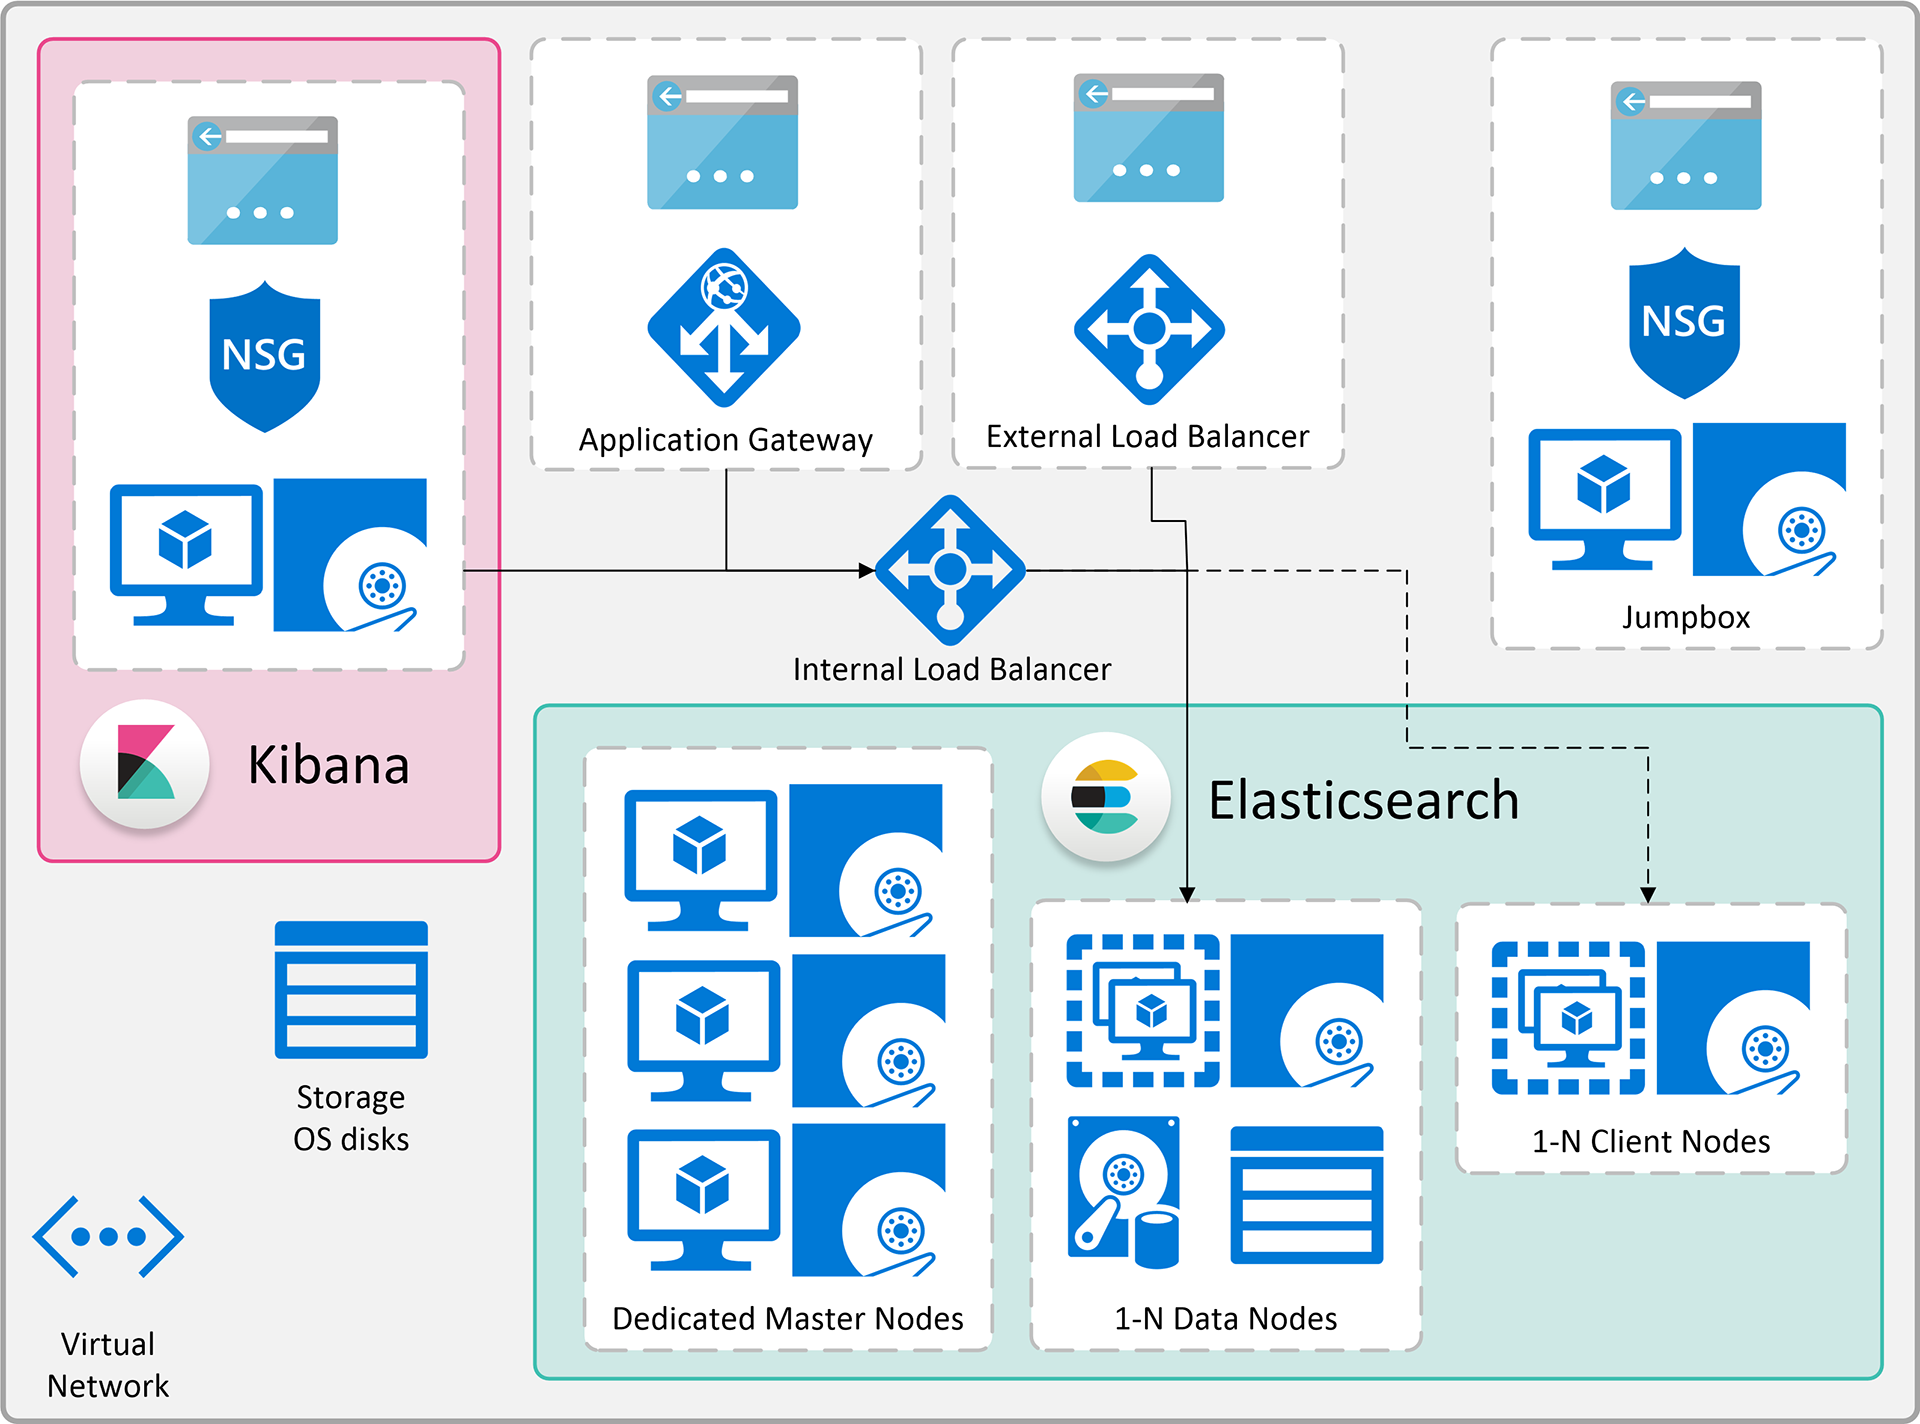 An overview of the Azure resources that can be deployed through the ARM template